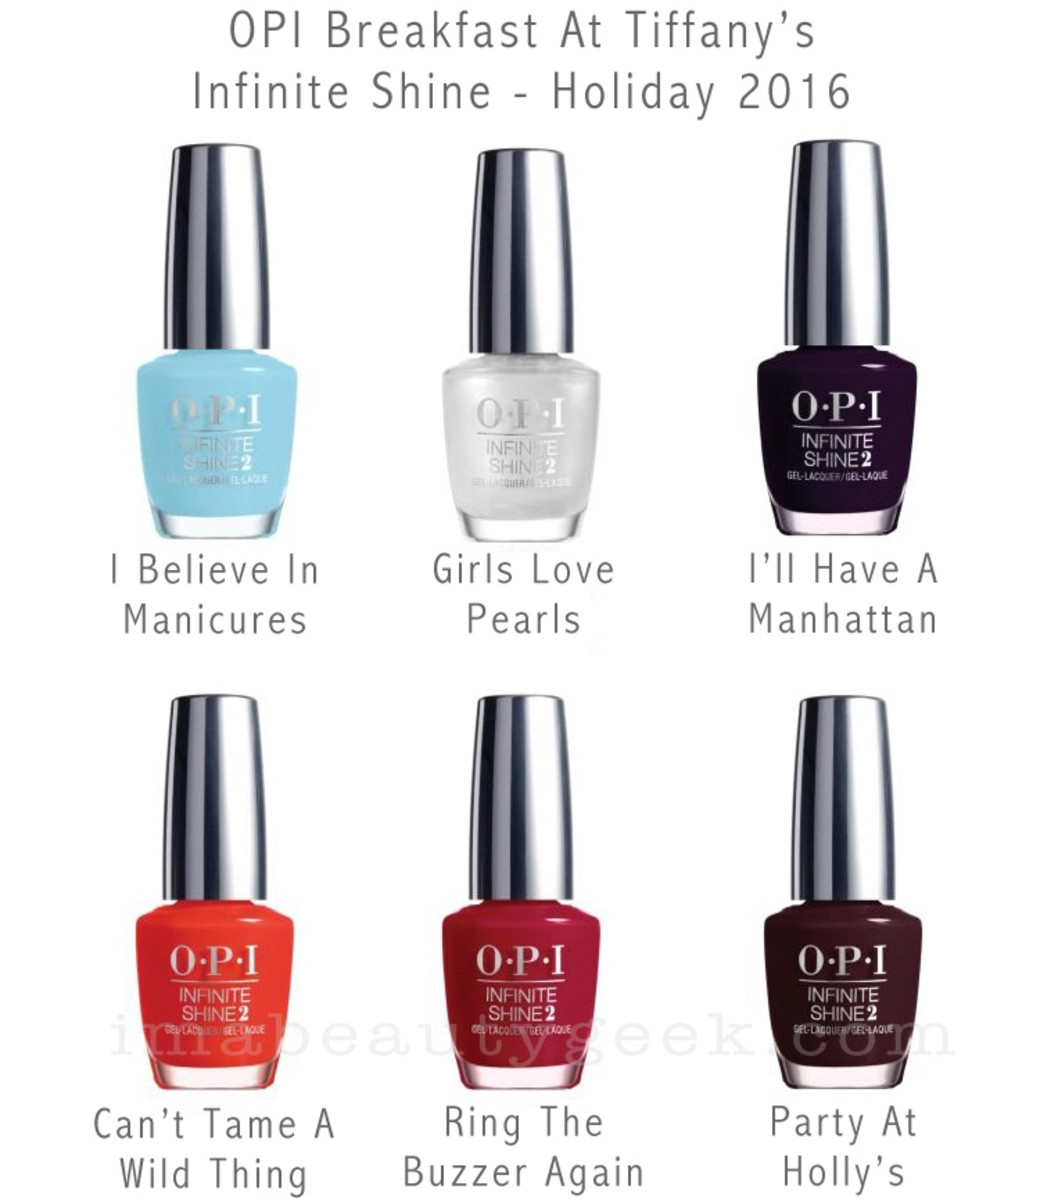 OPI Breakfast at Tiffanys Infinite Shine Holiday 2016 Bottleshots